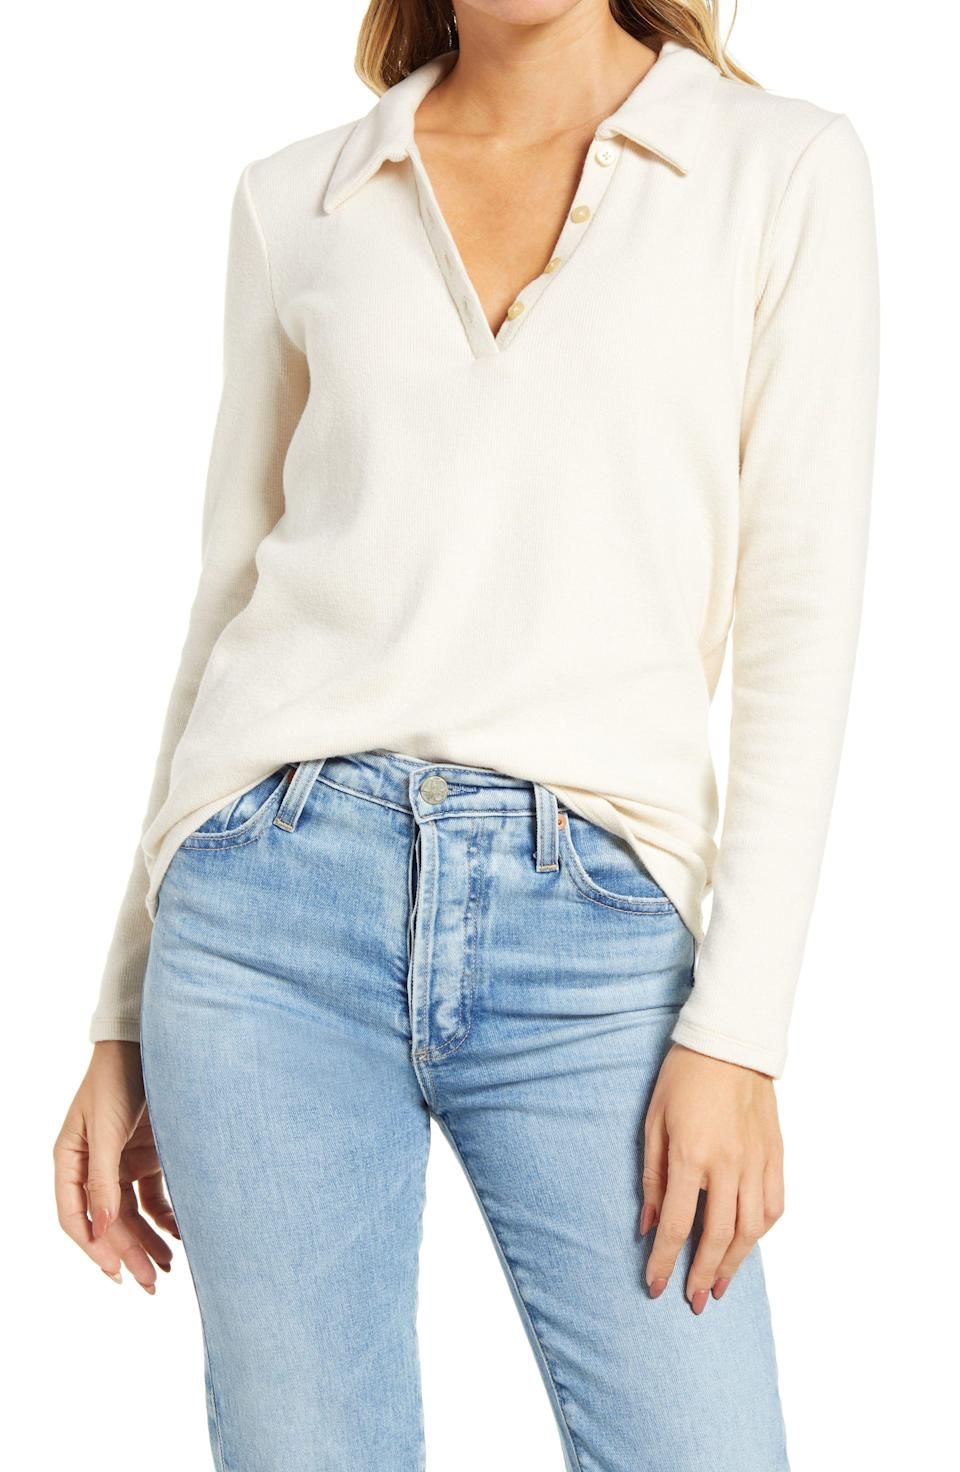 """<p><strong>MADEWELL</strong></p><p>nordstrom.com</p><p><strong>$38.50</strong></p><p><a href=""""https://go.redirectingat.com?id=74968X1596630&url=https%3A%2F%2Fwww.nordstrom.com%2Fs%2Fmadewell-womens-plush-ribbed-polo-shirt%2F5739854&sref=https%3A%2F%2Fwww.elle.com%2Ffashion%2Fshopping%2Fg34741930%2Fnordstrom-12-days-of-cyber-savings-sale%2F"""" rel=""""nofollow noopener"""" target=""""_blank"""" data-ylk=""""slk:Shop Now"""" class=""""link rapid-noclick-resp"""">Shop Now</a></p>"""